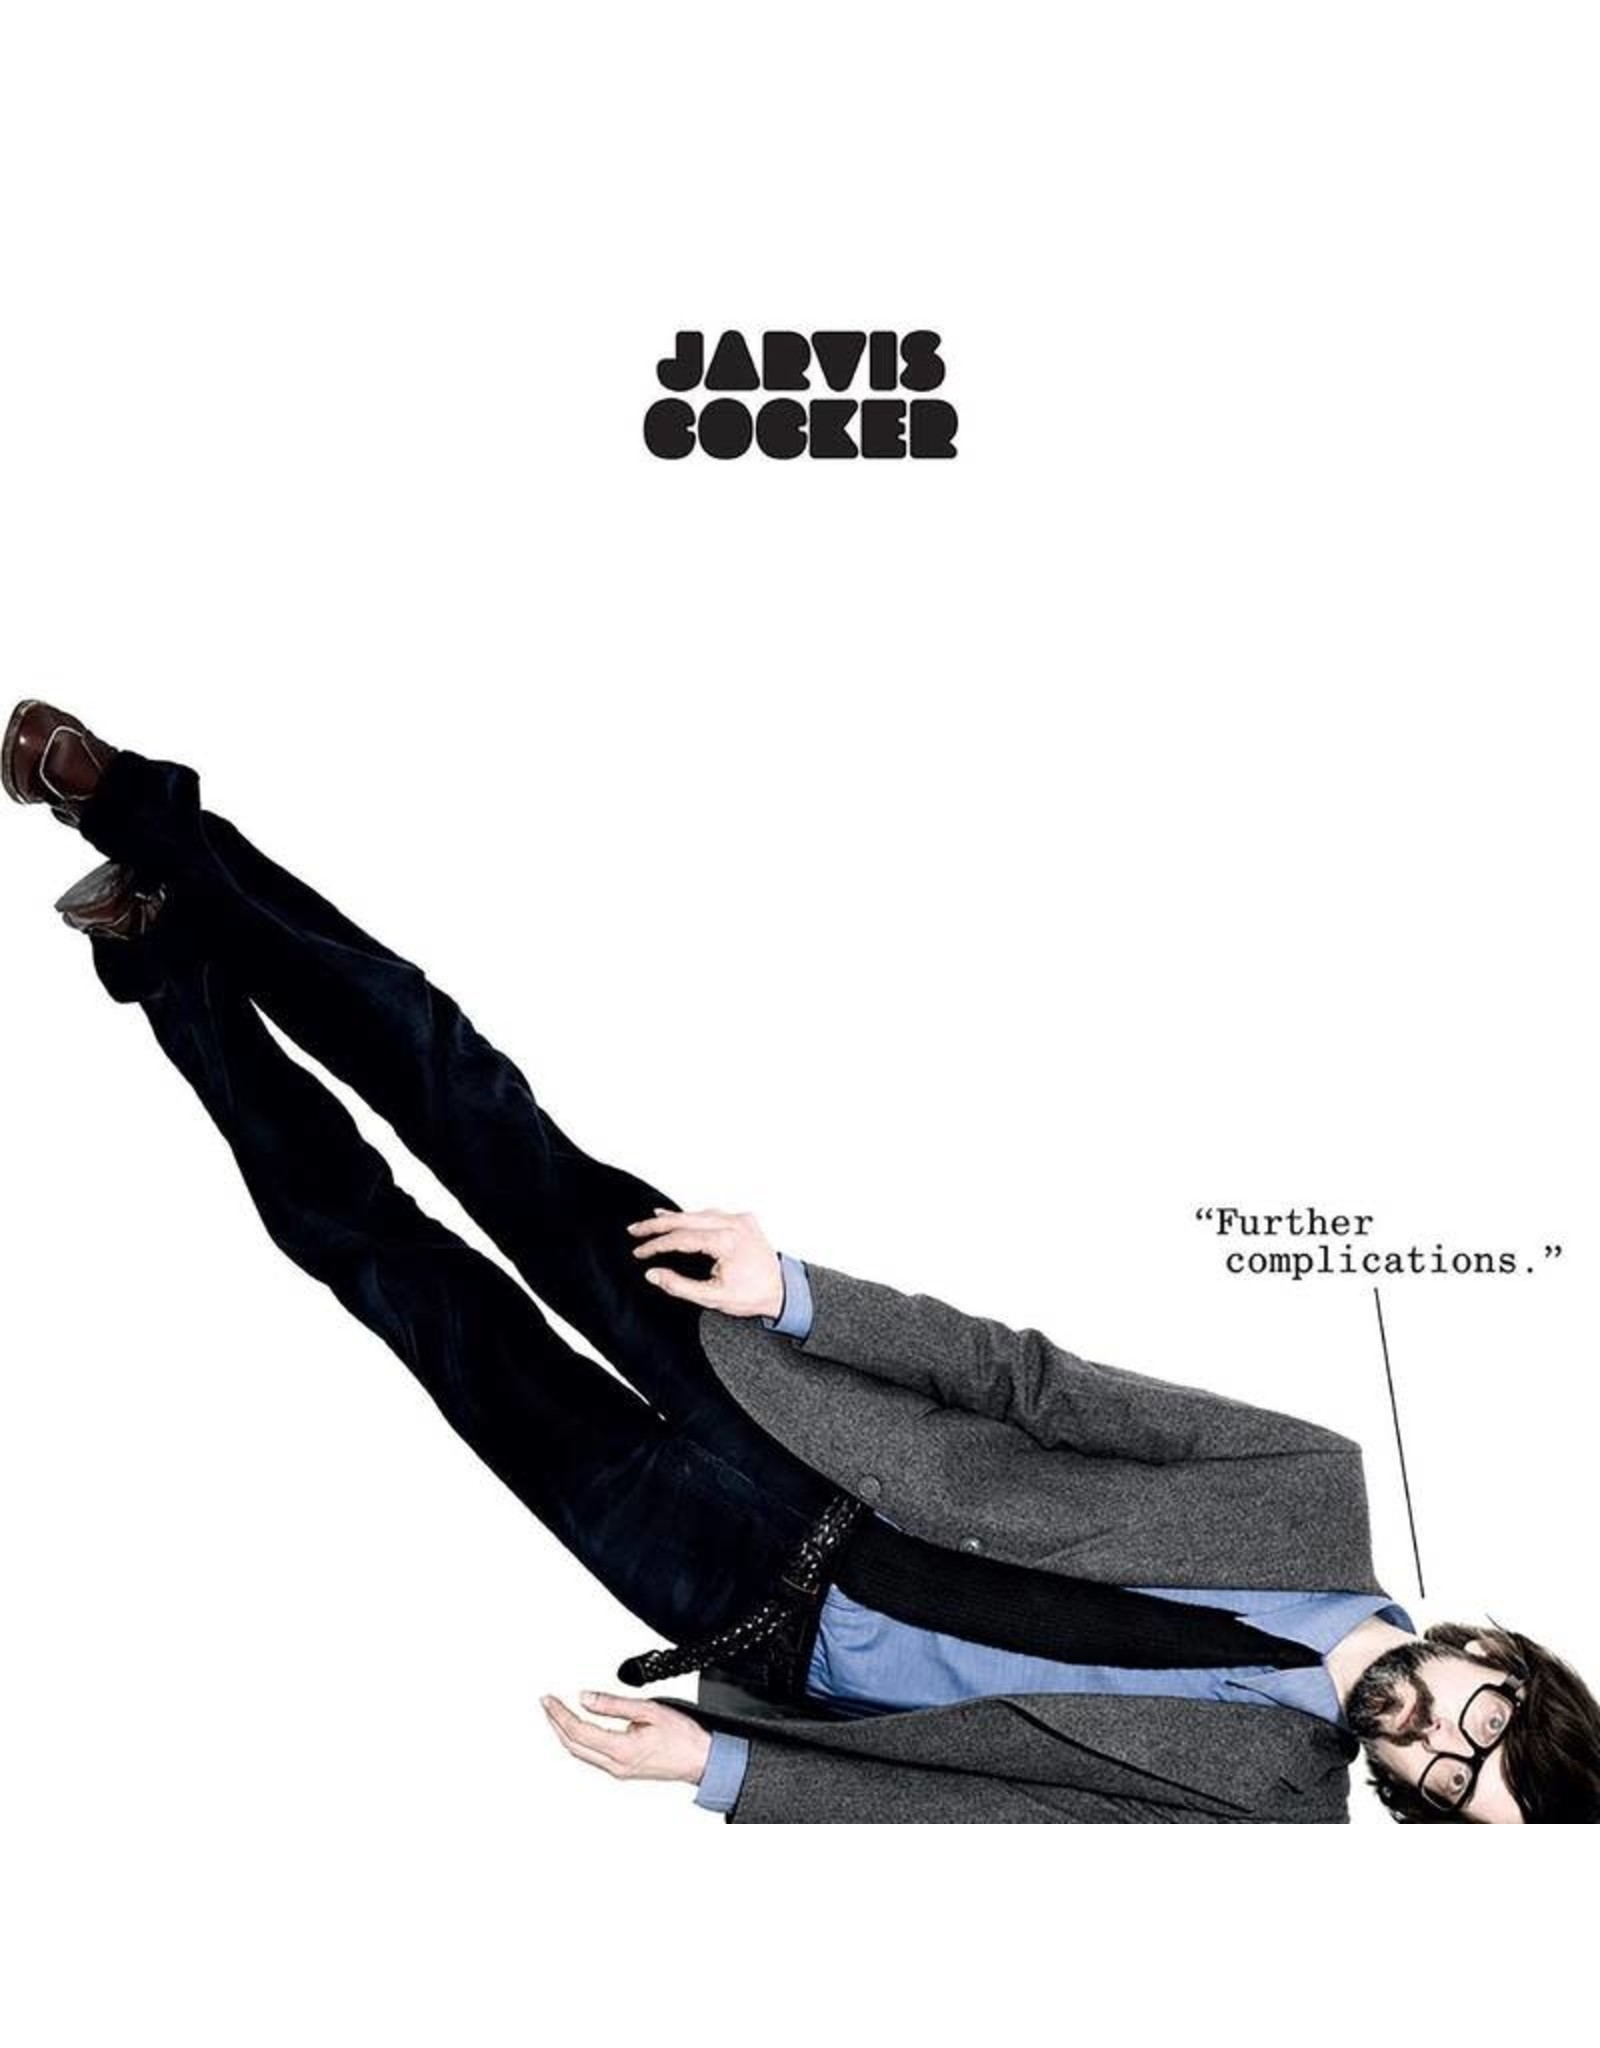 Jarvis Cocker - Further Complications (Record Store Day) [White Vinyl]